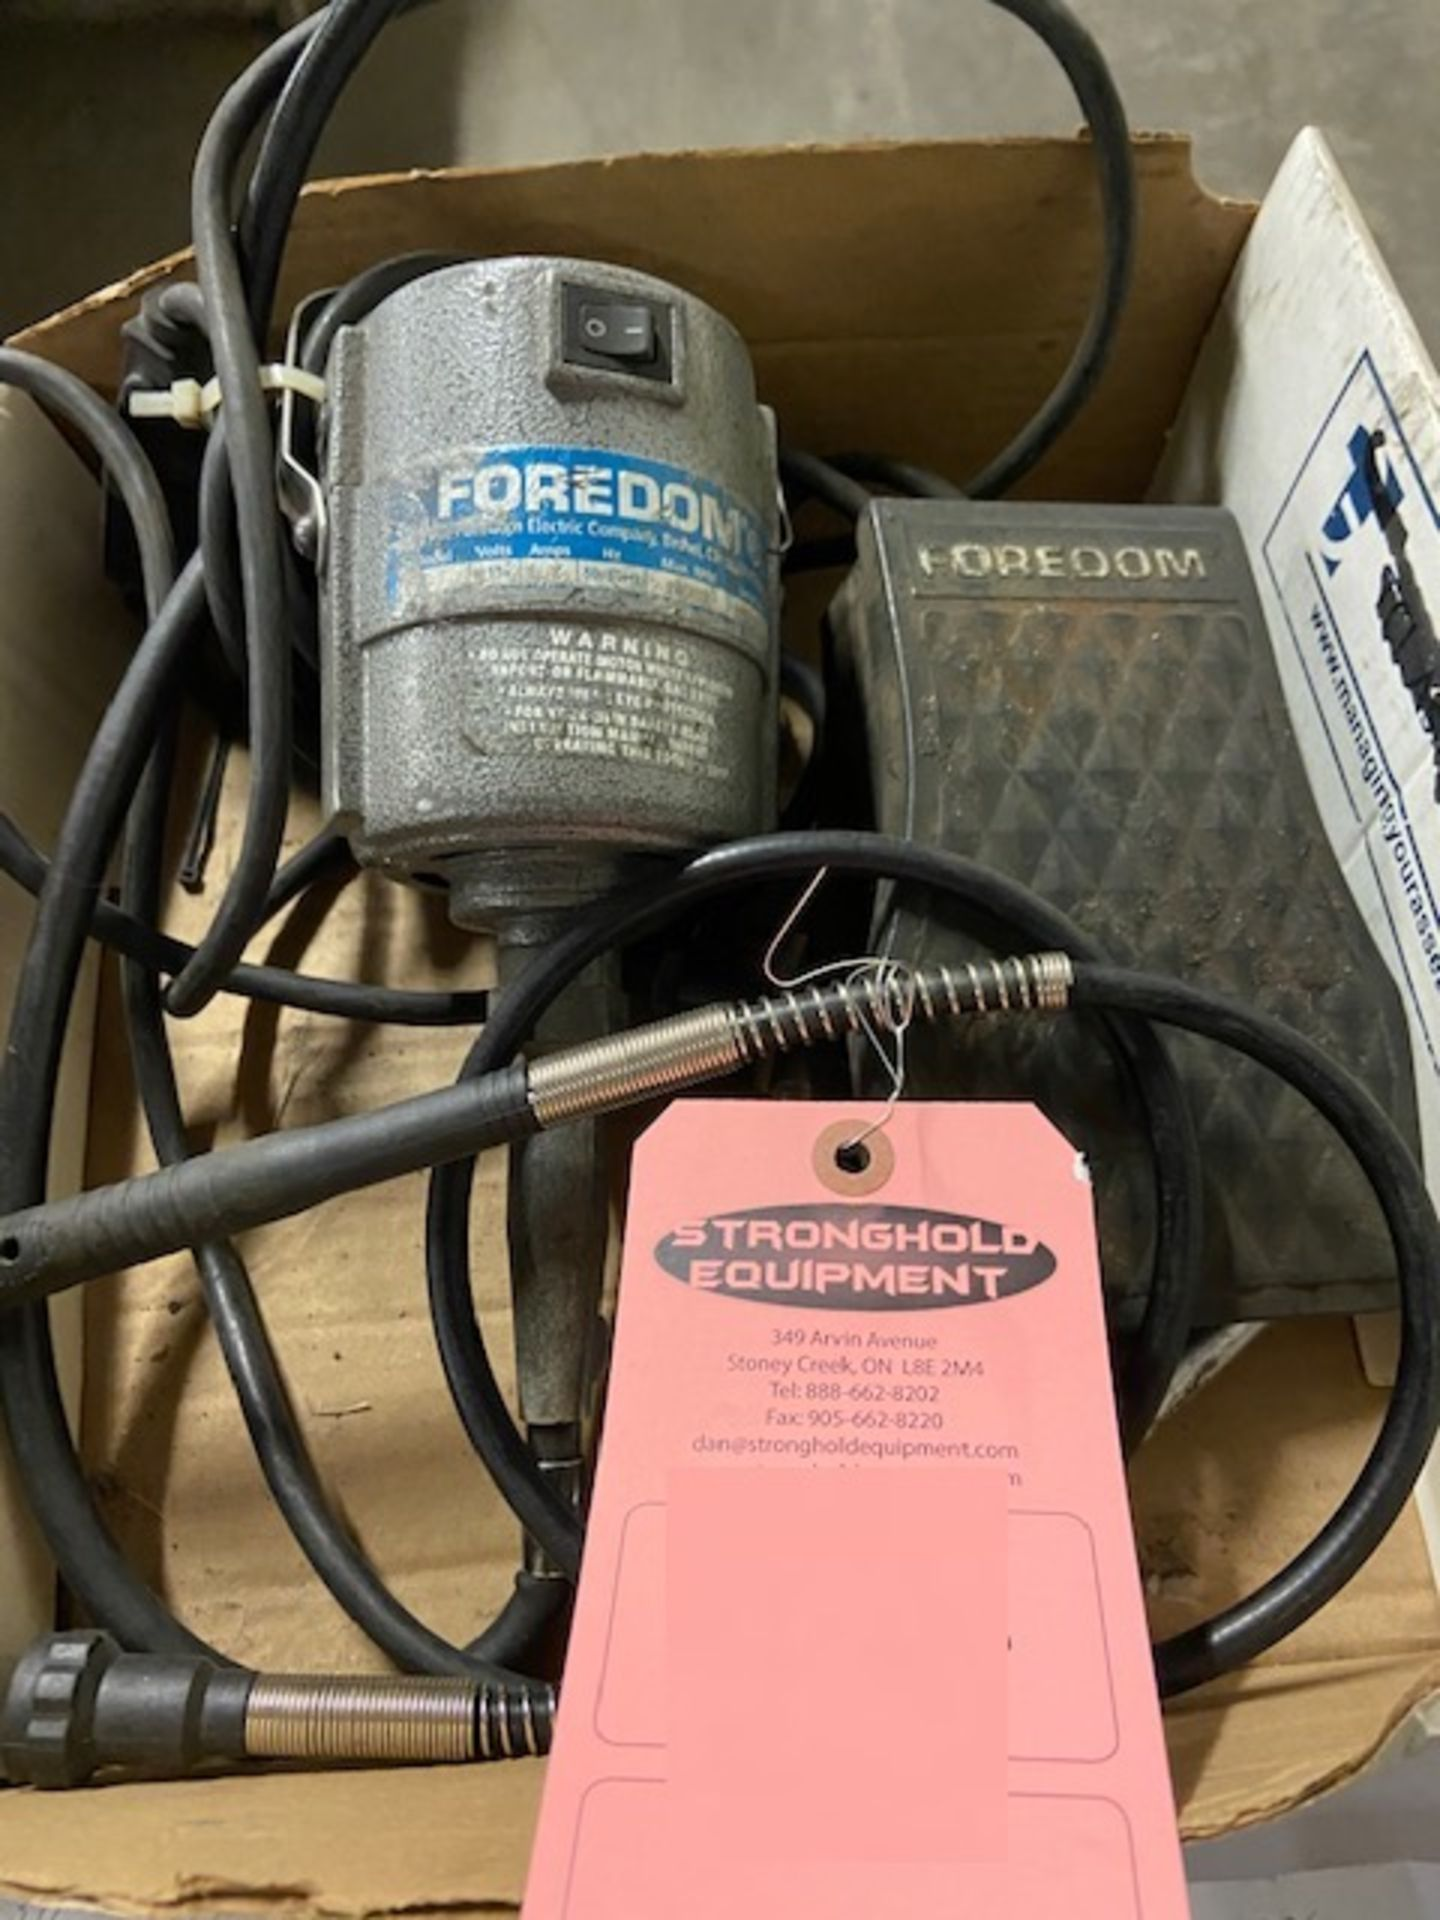 Foredom USA diprofil Power Unit with Foredom Foot Control Unit 110V